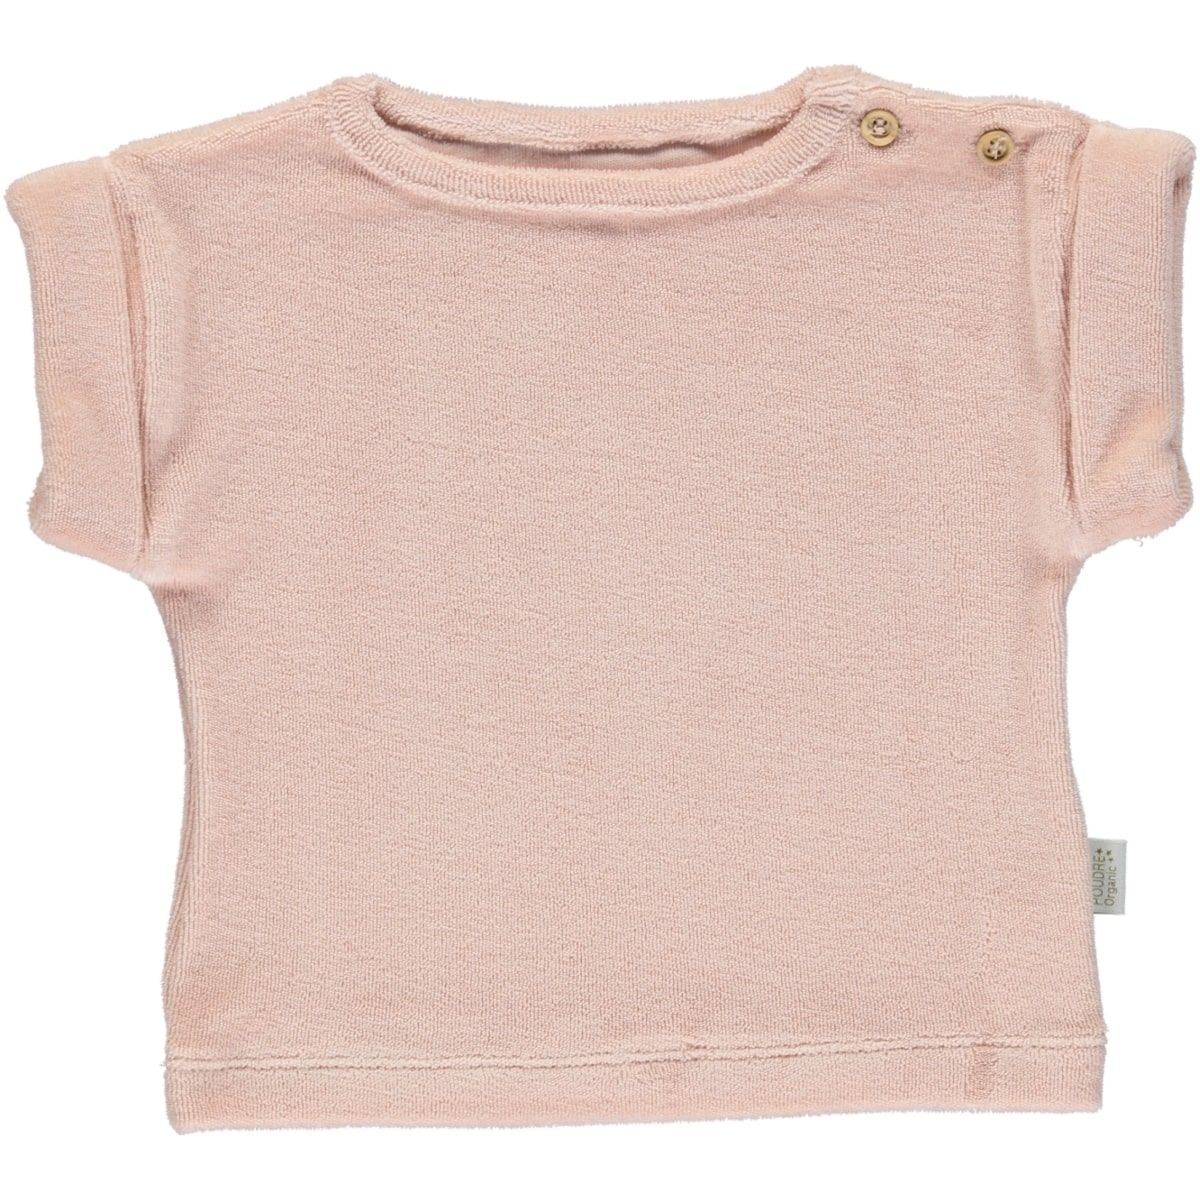 Poudre Organic Blouse Eponge Laurier Evening Sand Pink